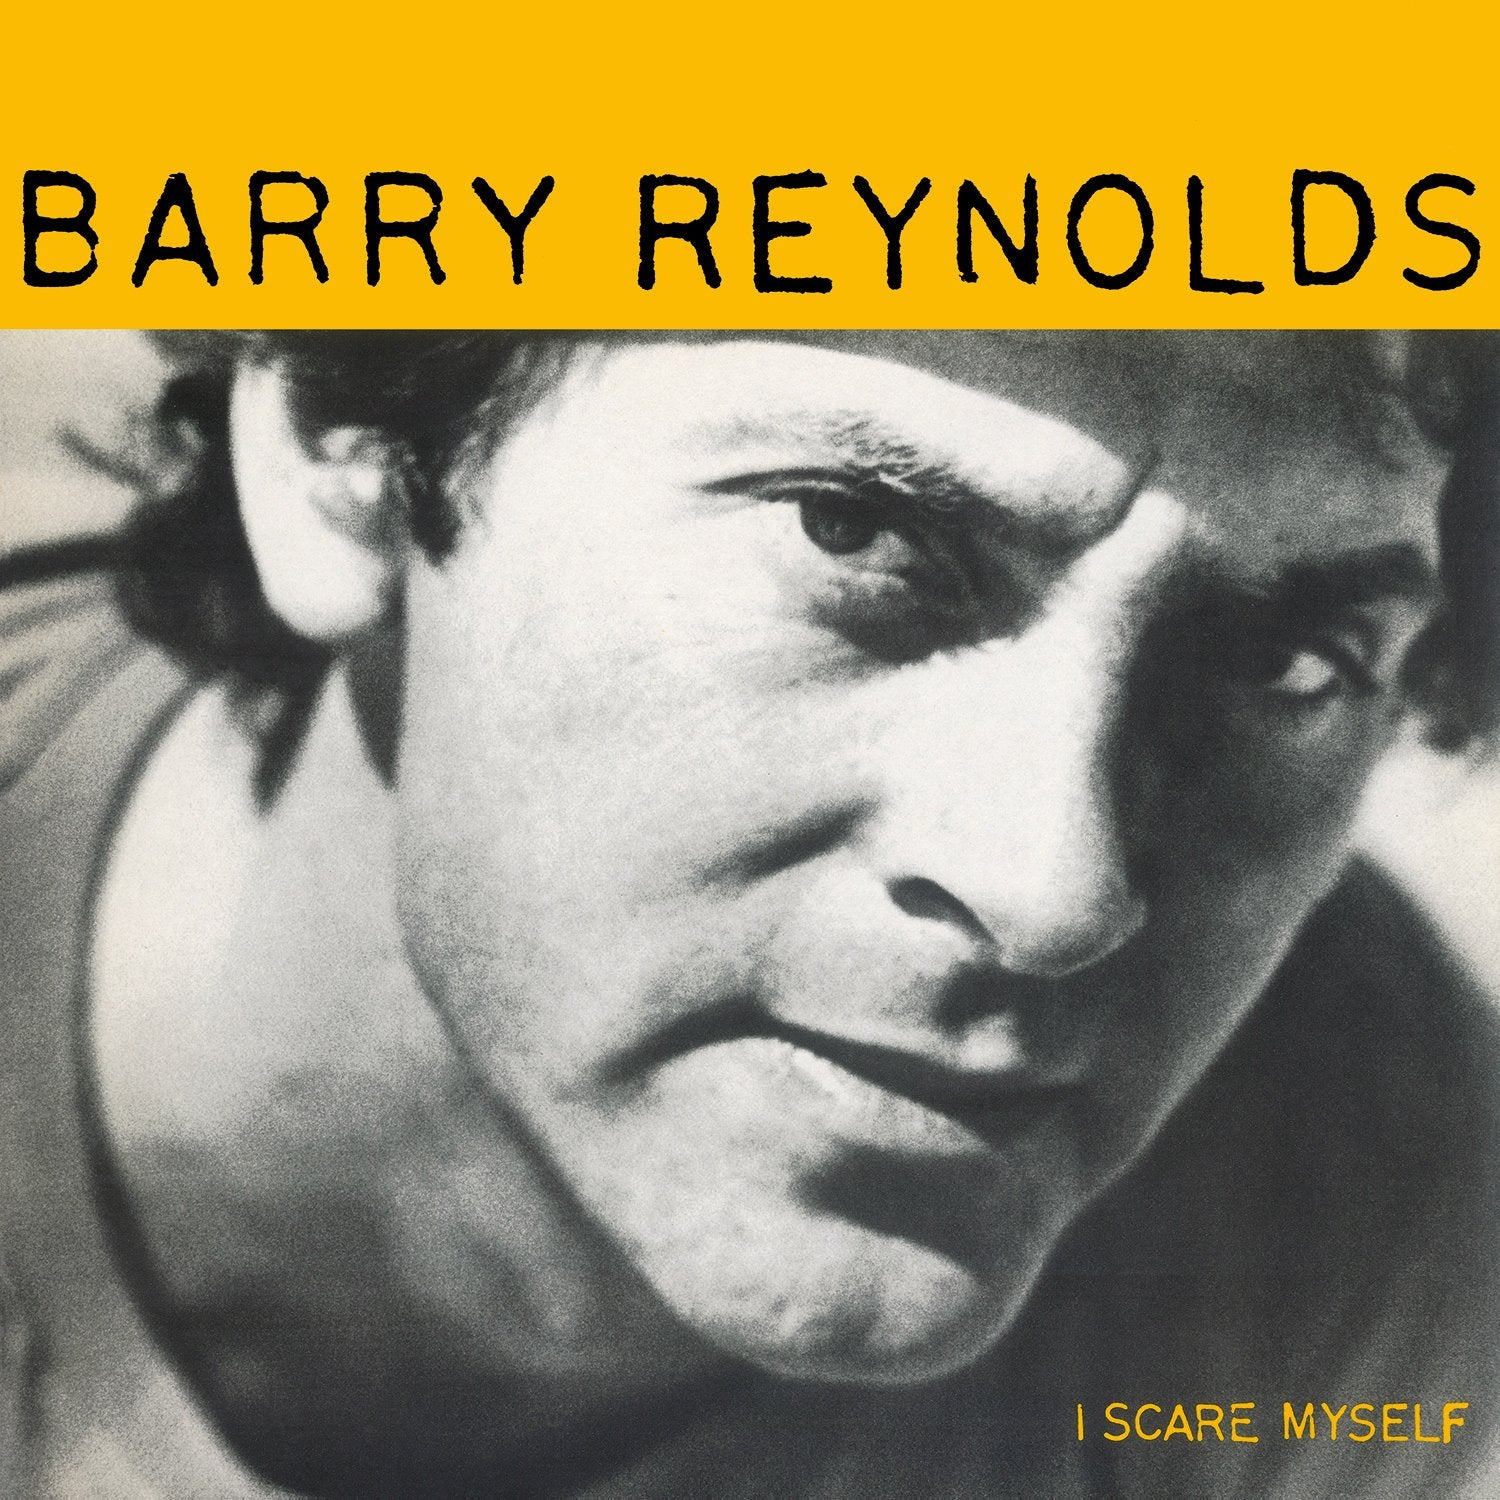 Barry Reynolds I Scare Myself Album Cover - Adsum